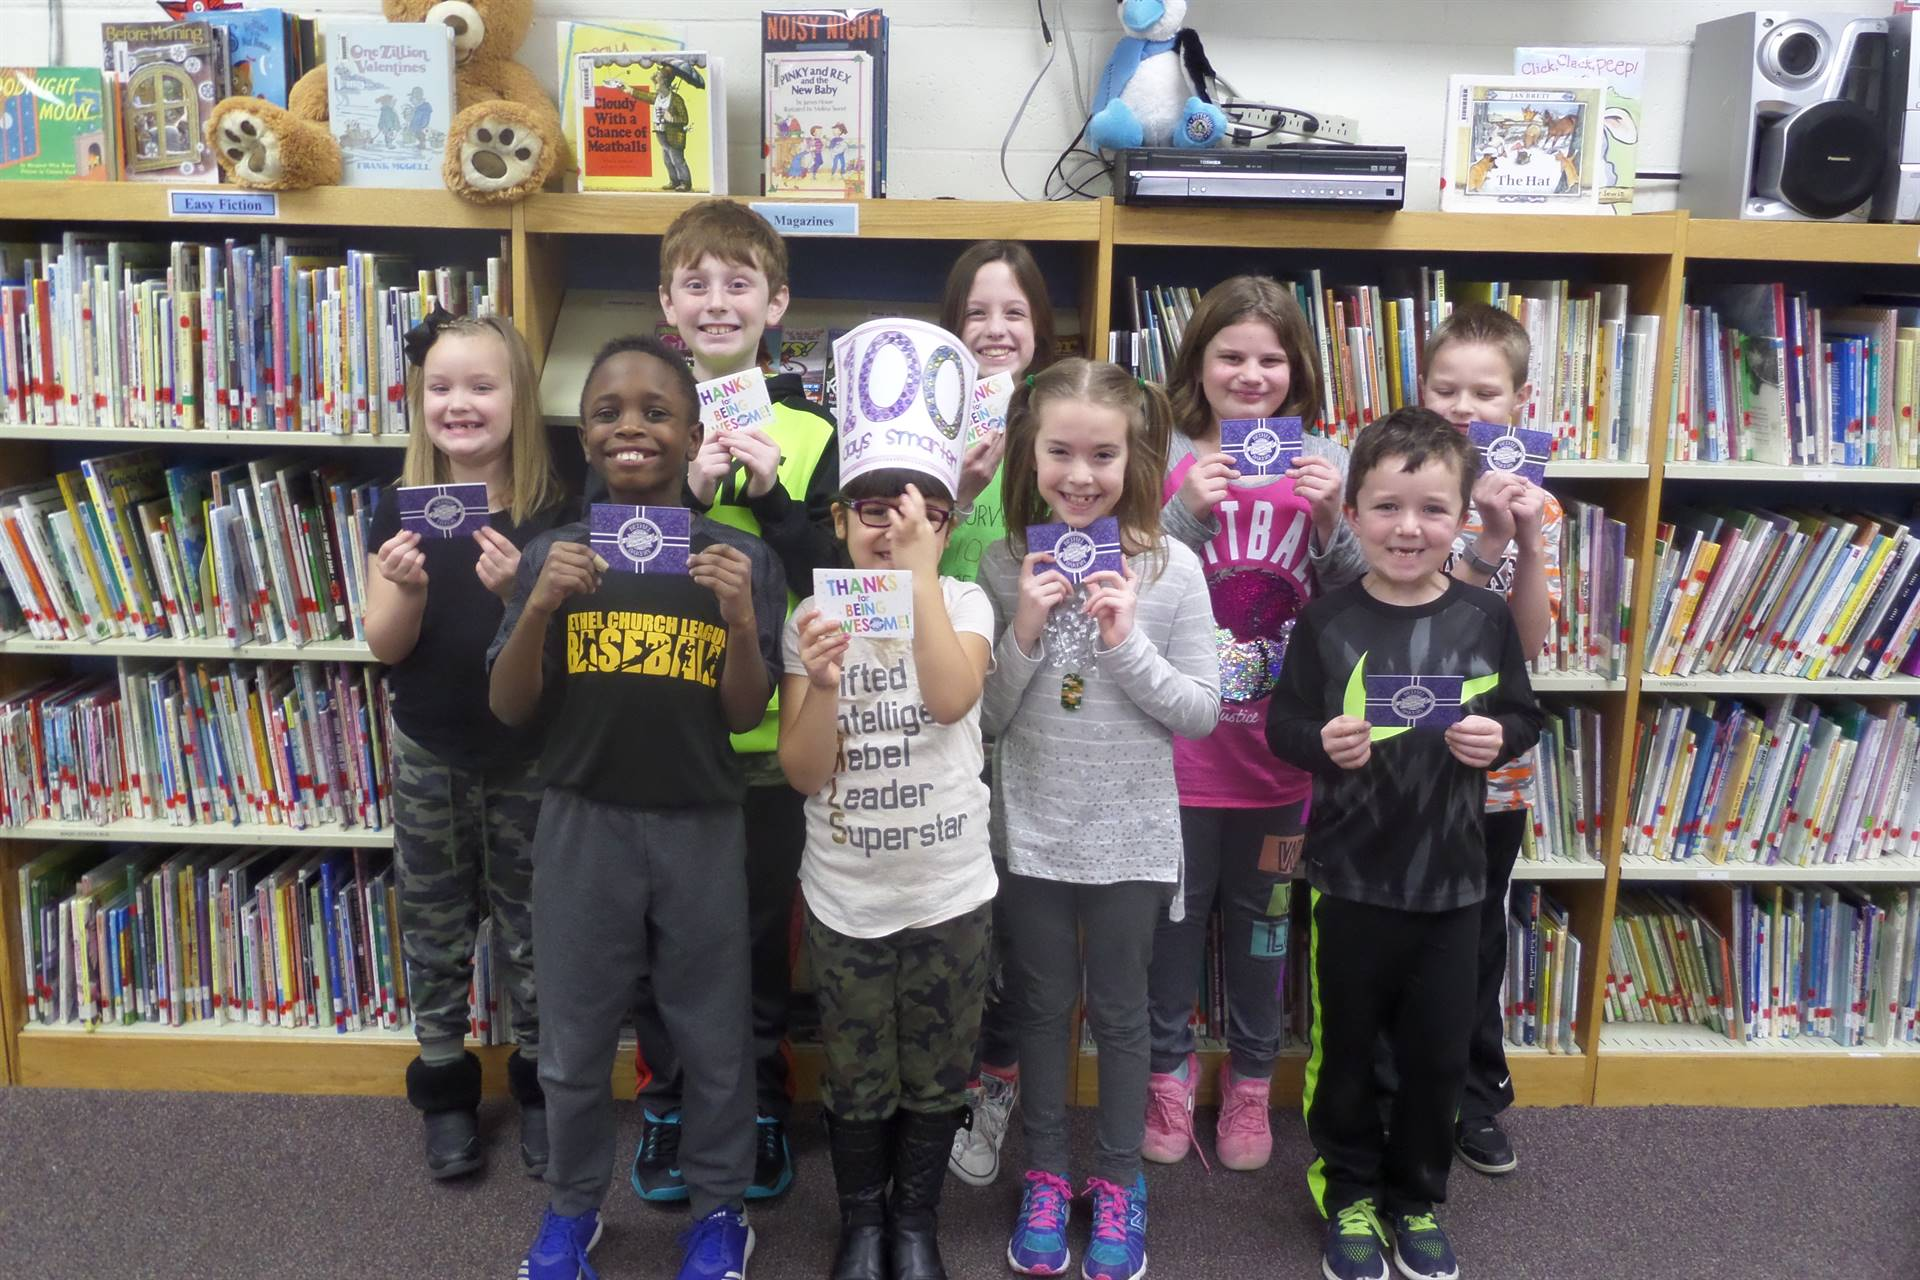 Prize winners on the 100th day of school